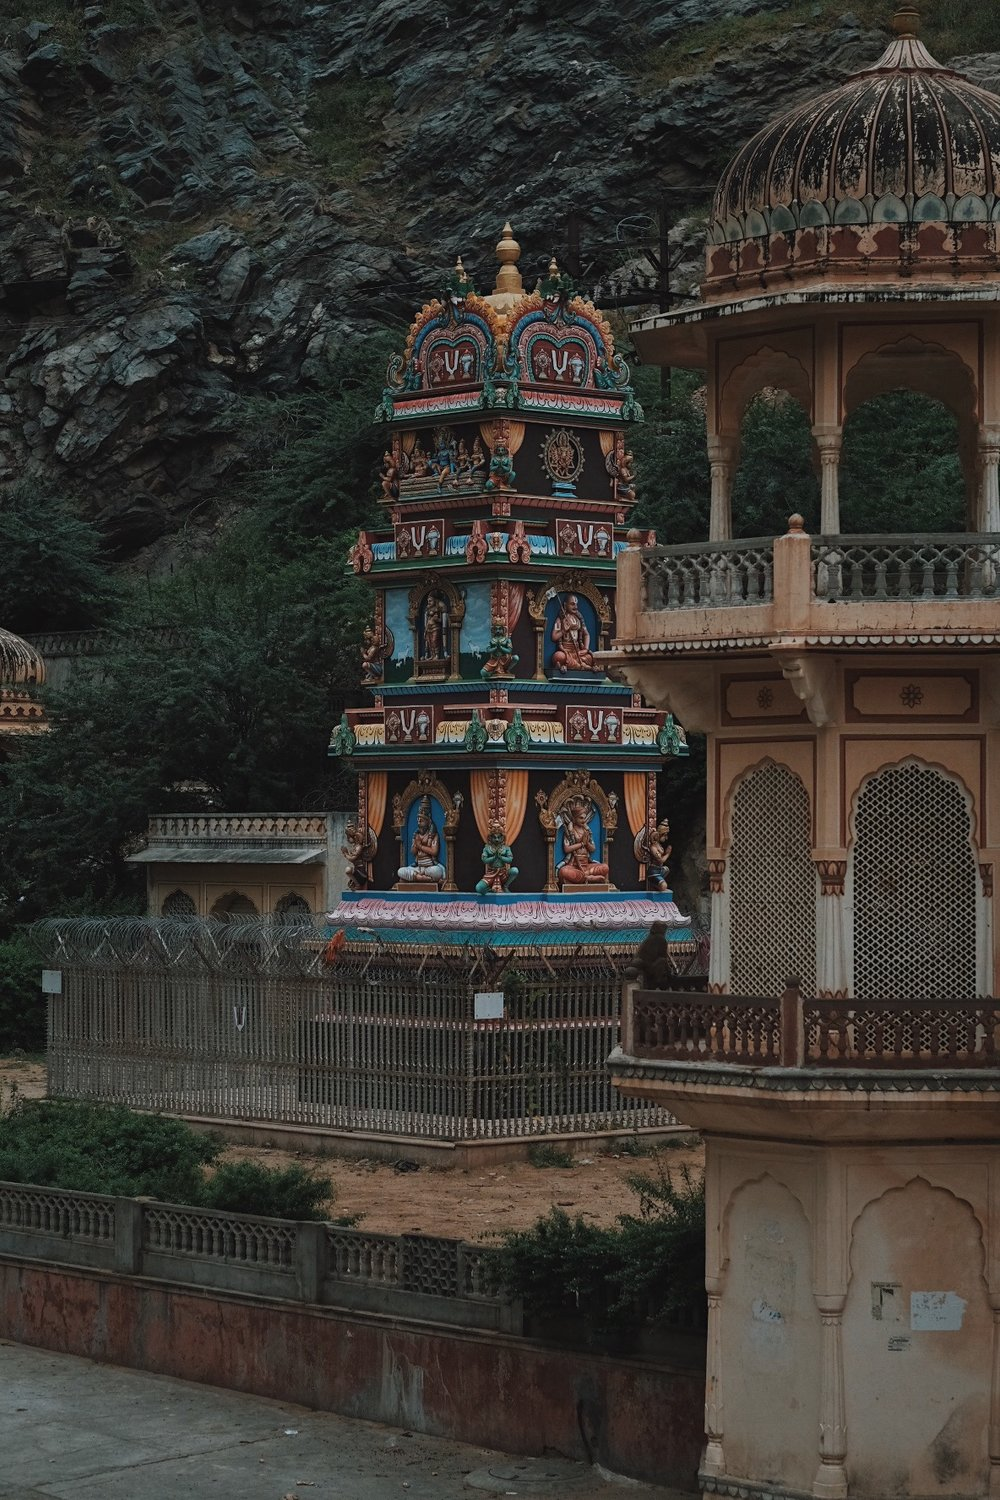 Temple Grounds, Shri Galtaji, Inspired India 2018. Photography by Precious LaPlante.